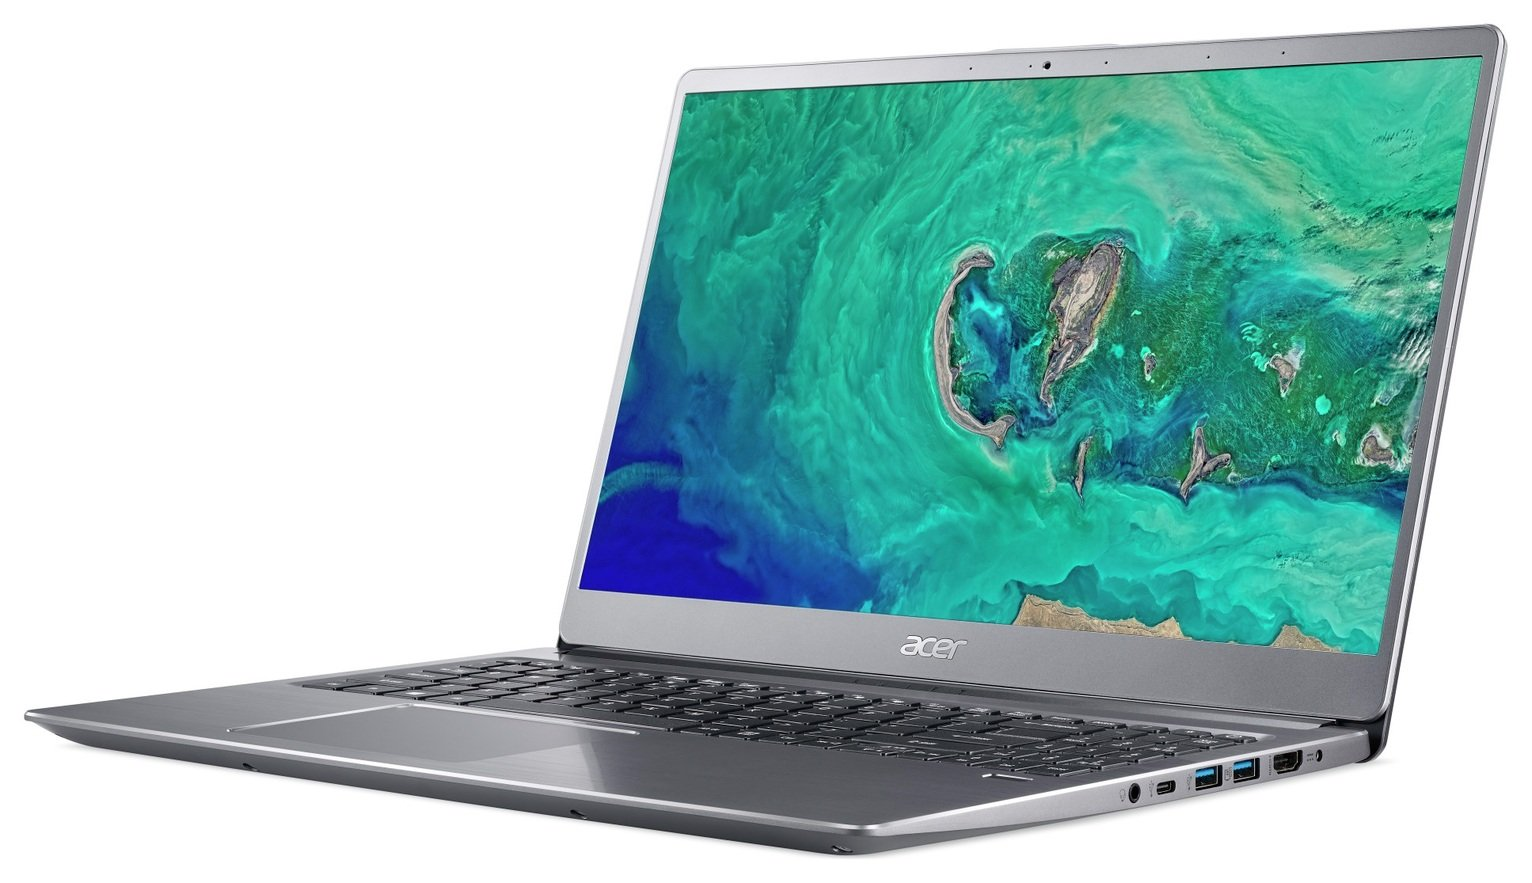 Acer Swift 3 15.6 Inch i5 8GB 256GB FHD Laptop - Silver